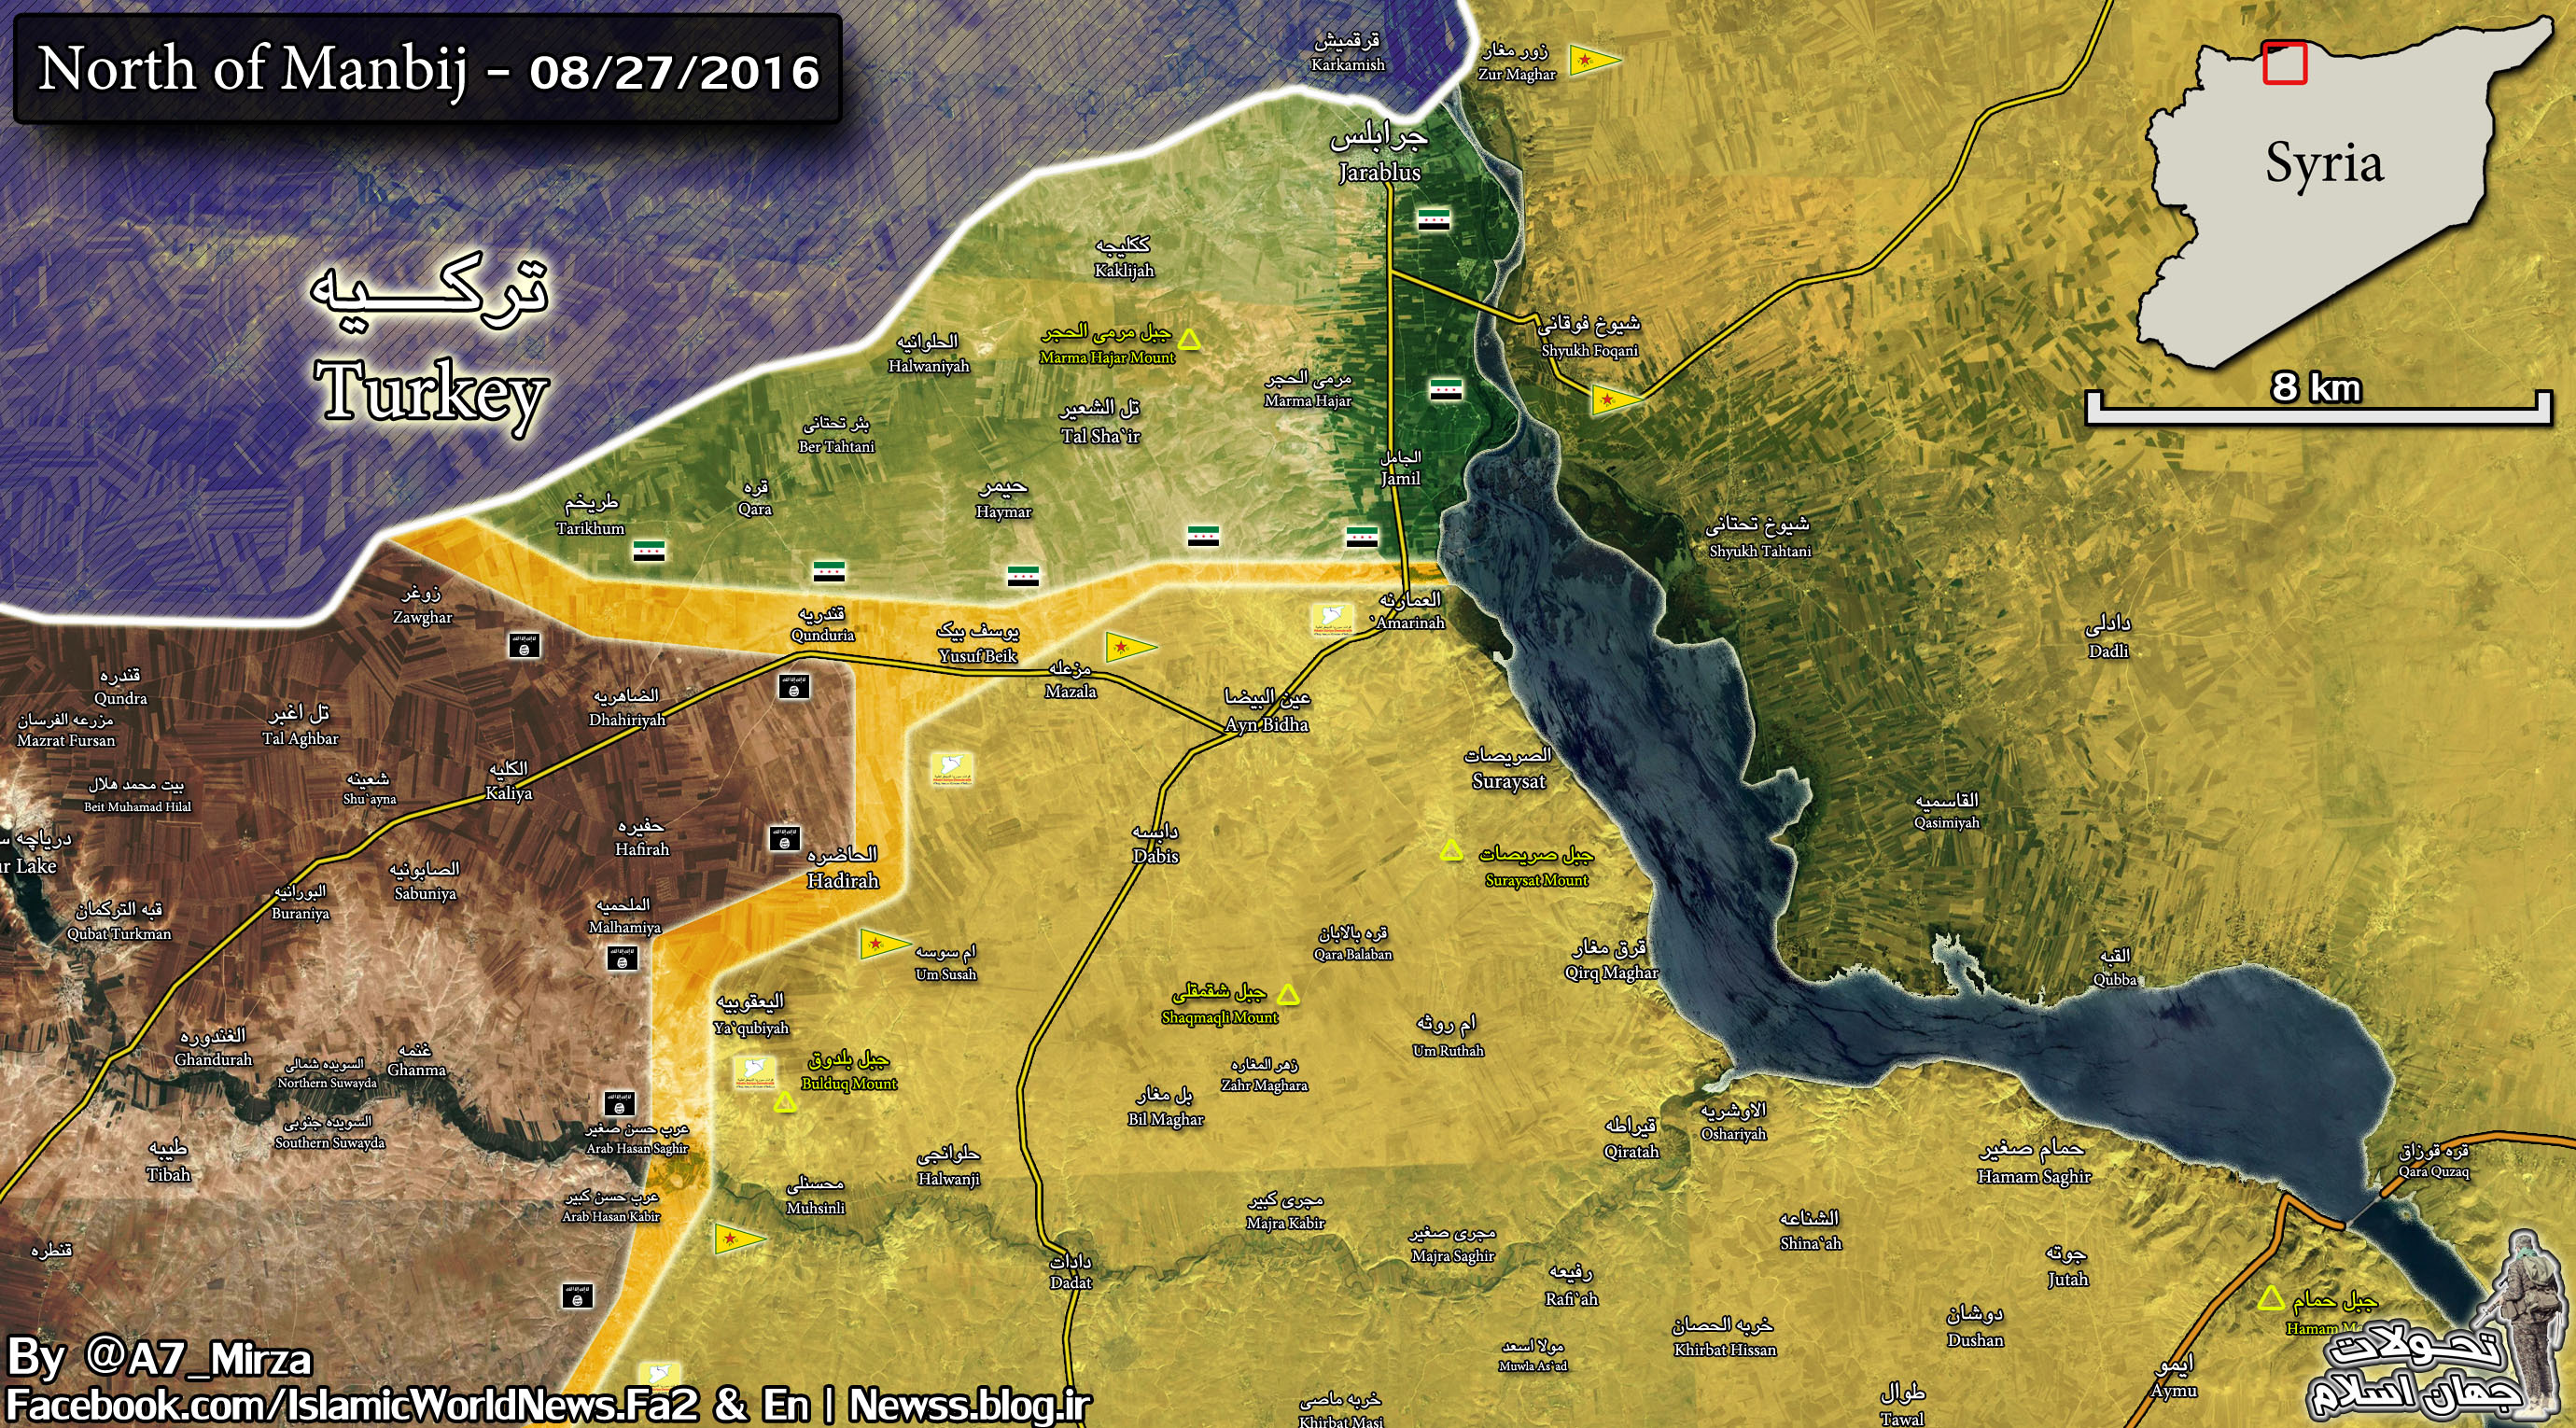 Map Update: Turkey-led Forces Engage SDF in Northern Syria. 1 Turkish Soldier Killed, 2 Wounded